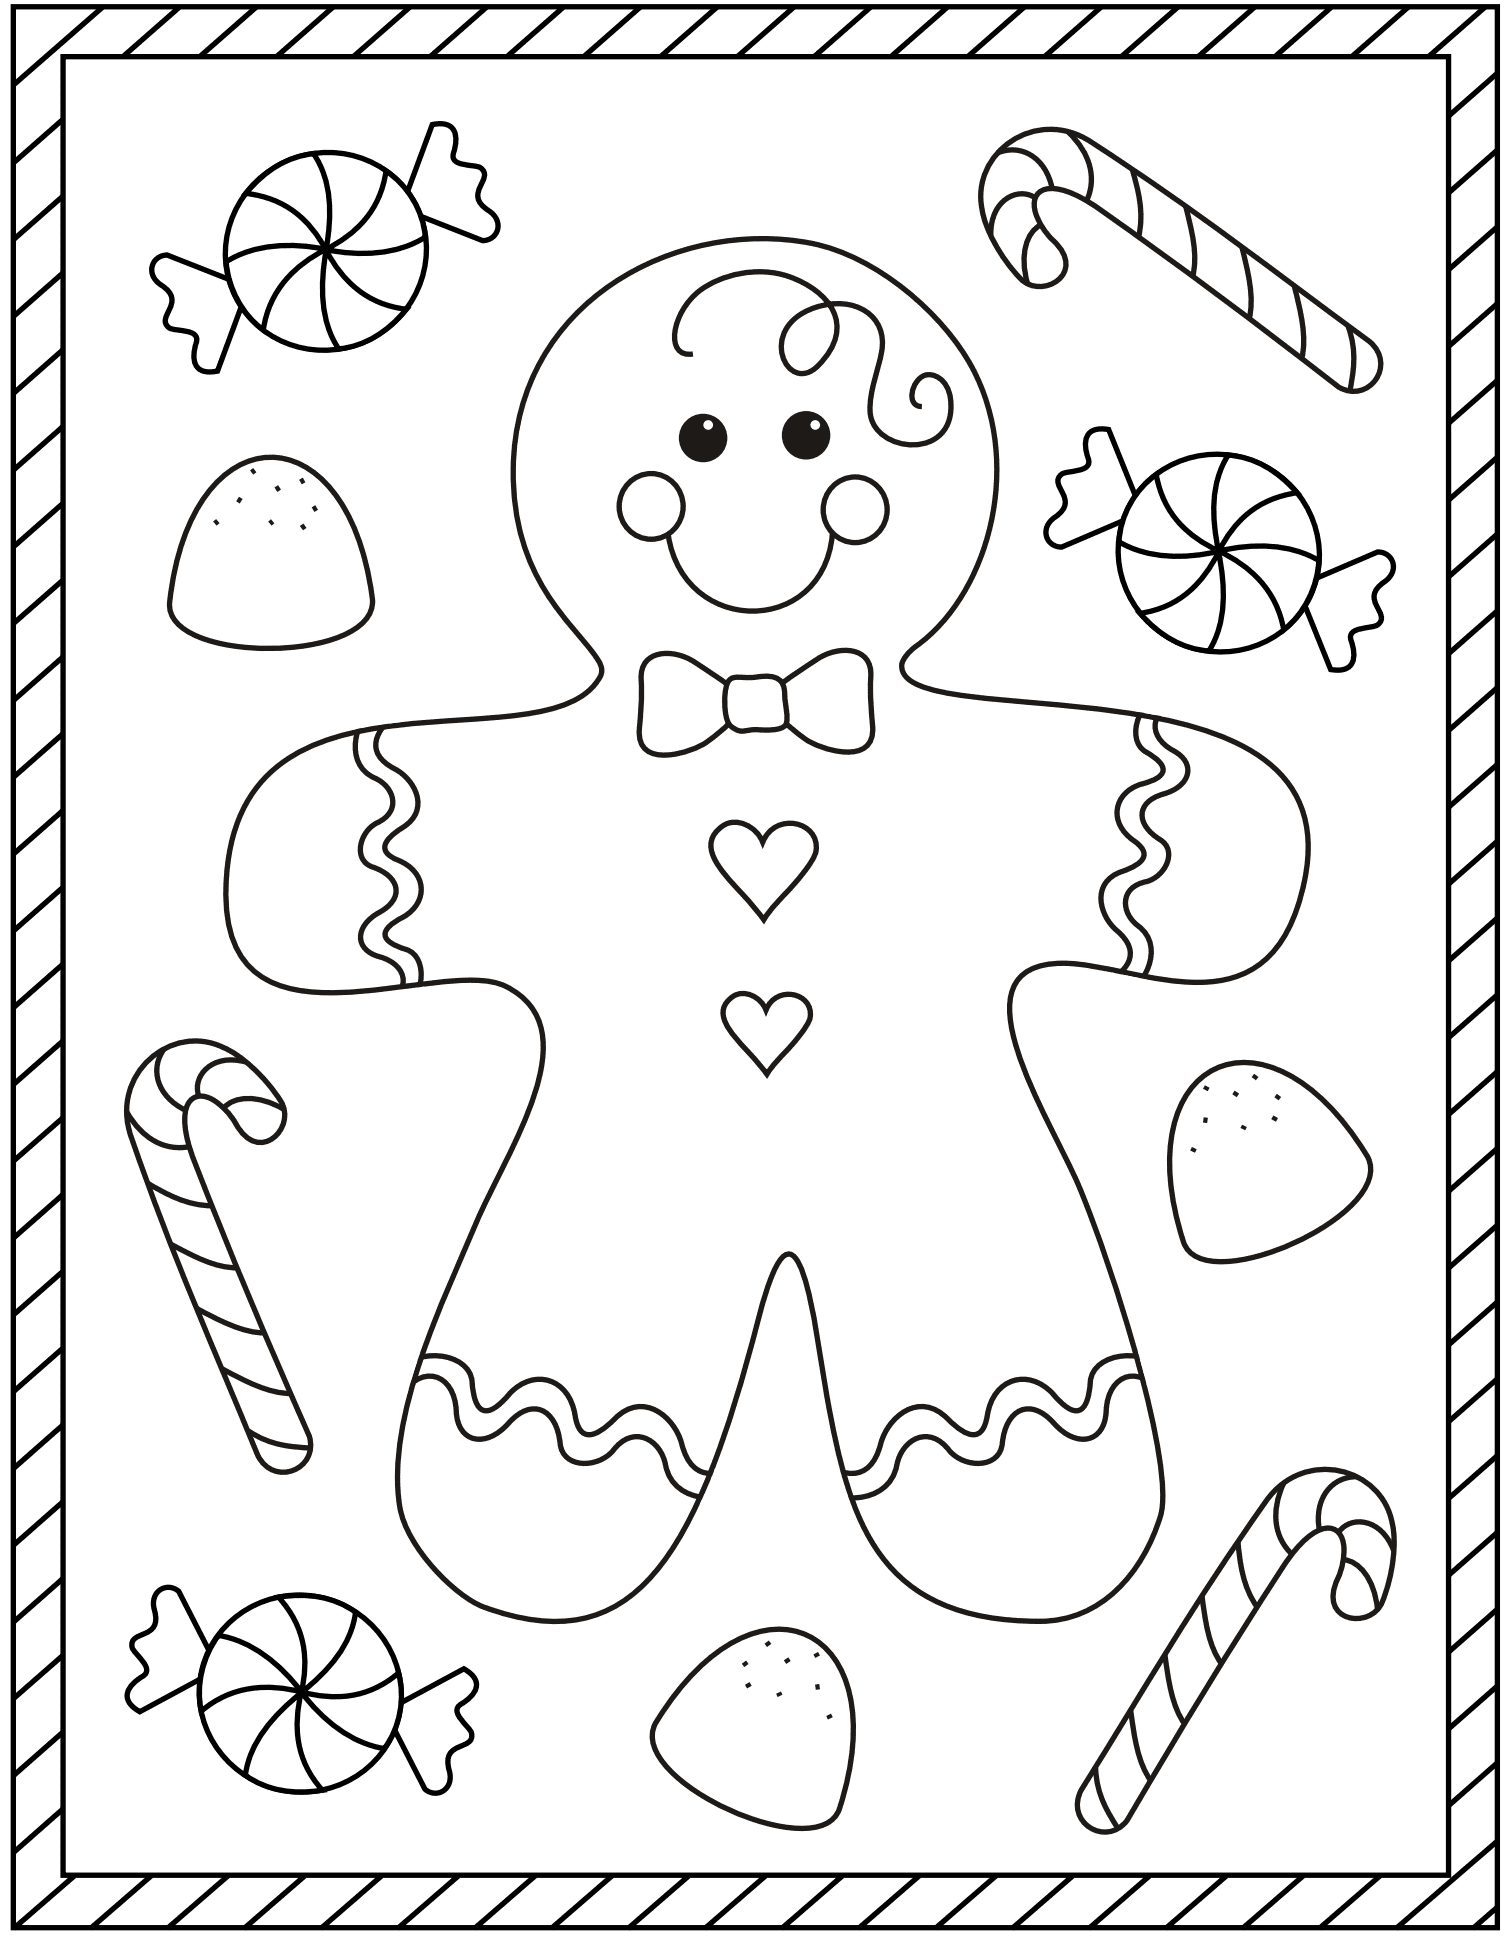 35+ Printable full size coloring pages for kids ideas